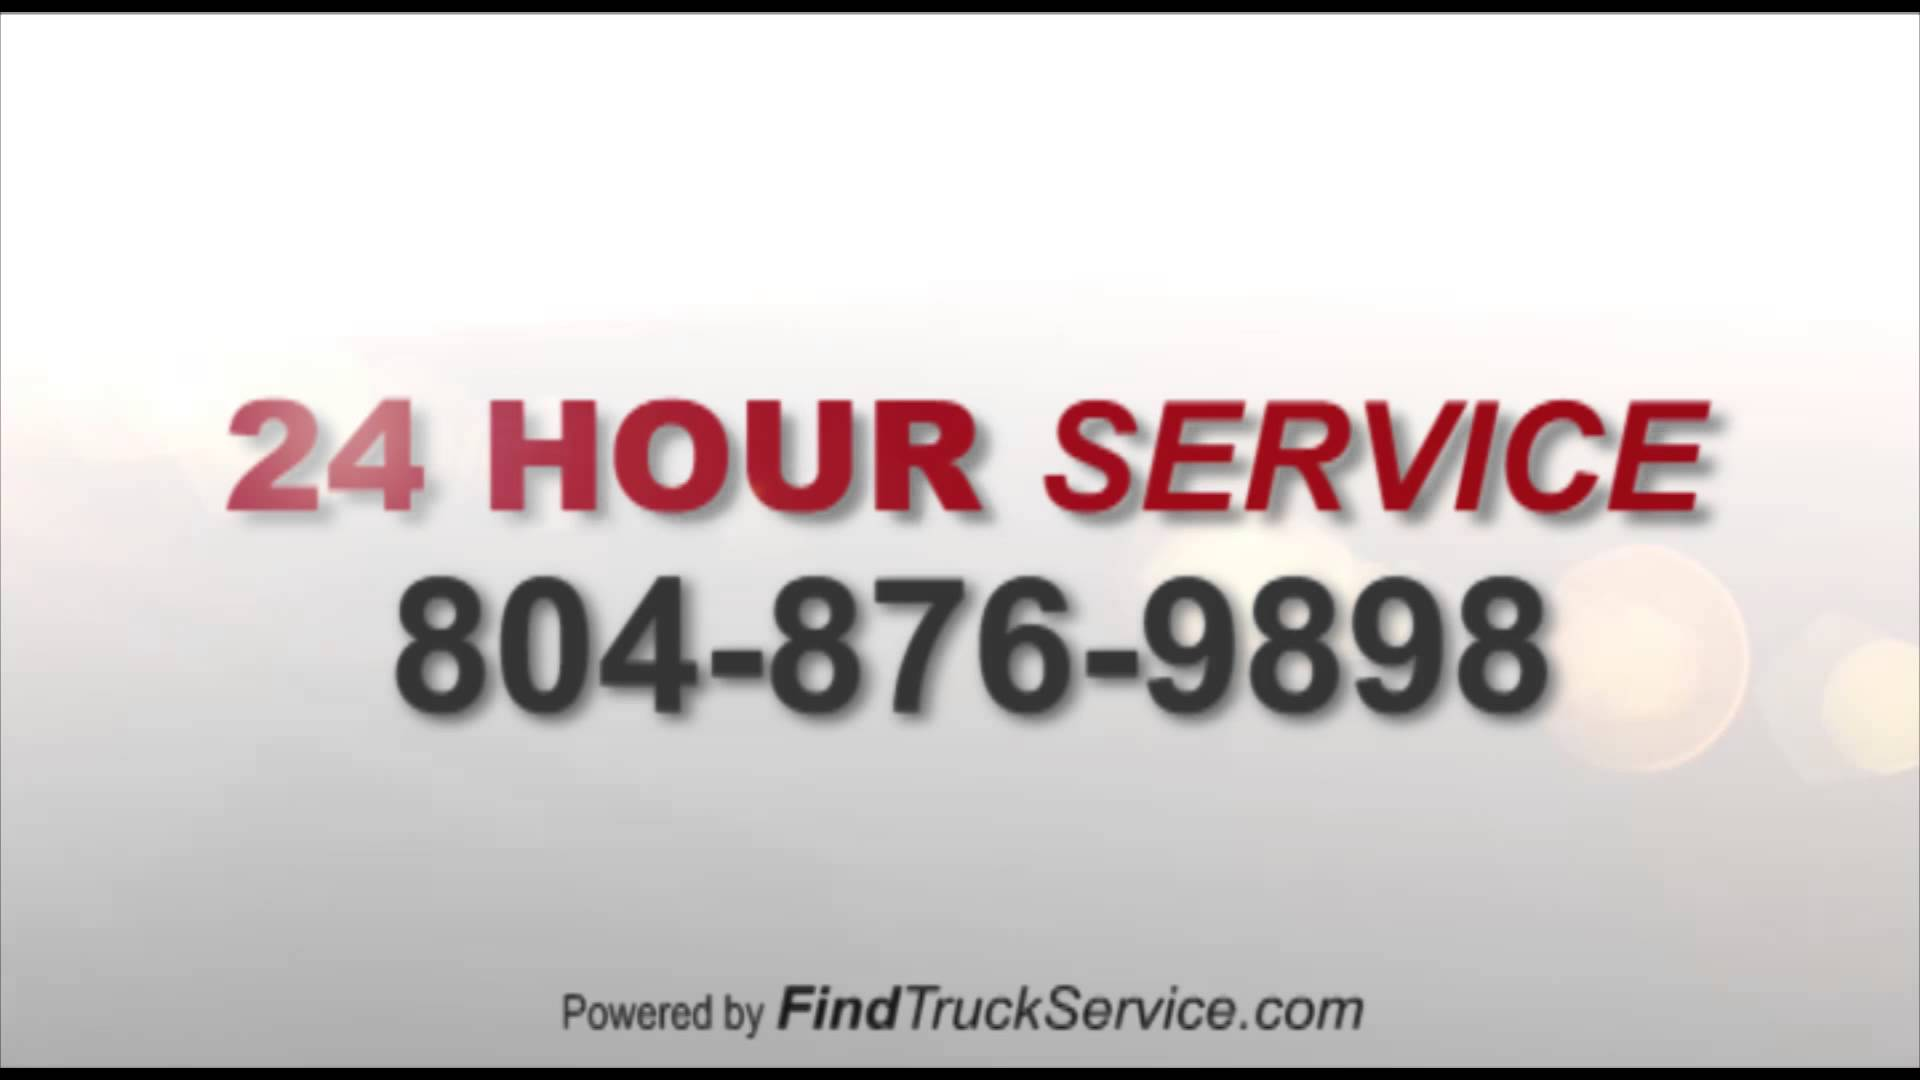 Exit 98 Truck, Trailer & Tire Repair in Doswell, VA | 24 Hour Find Truck Service